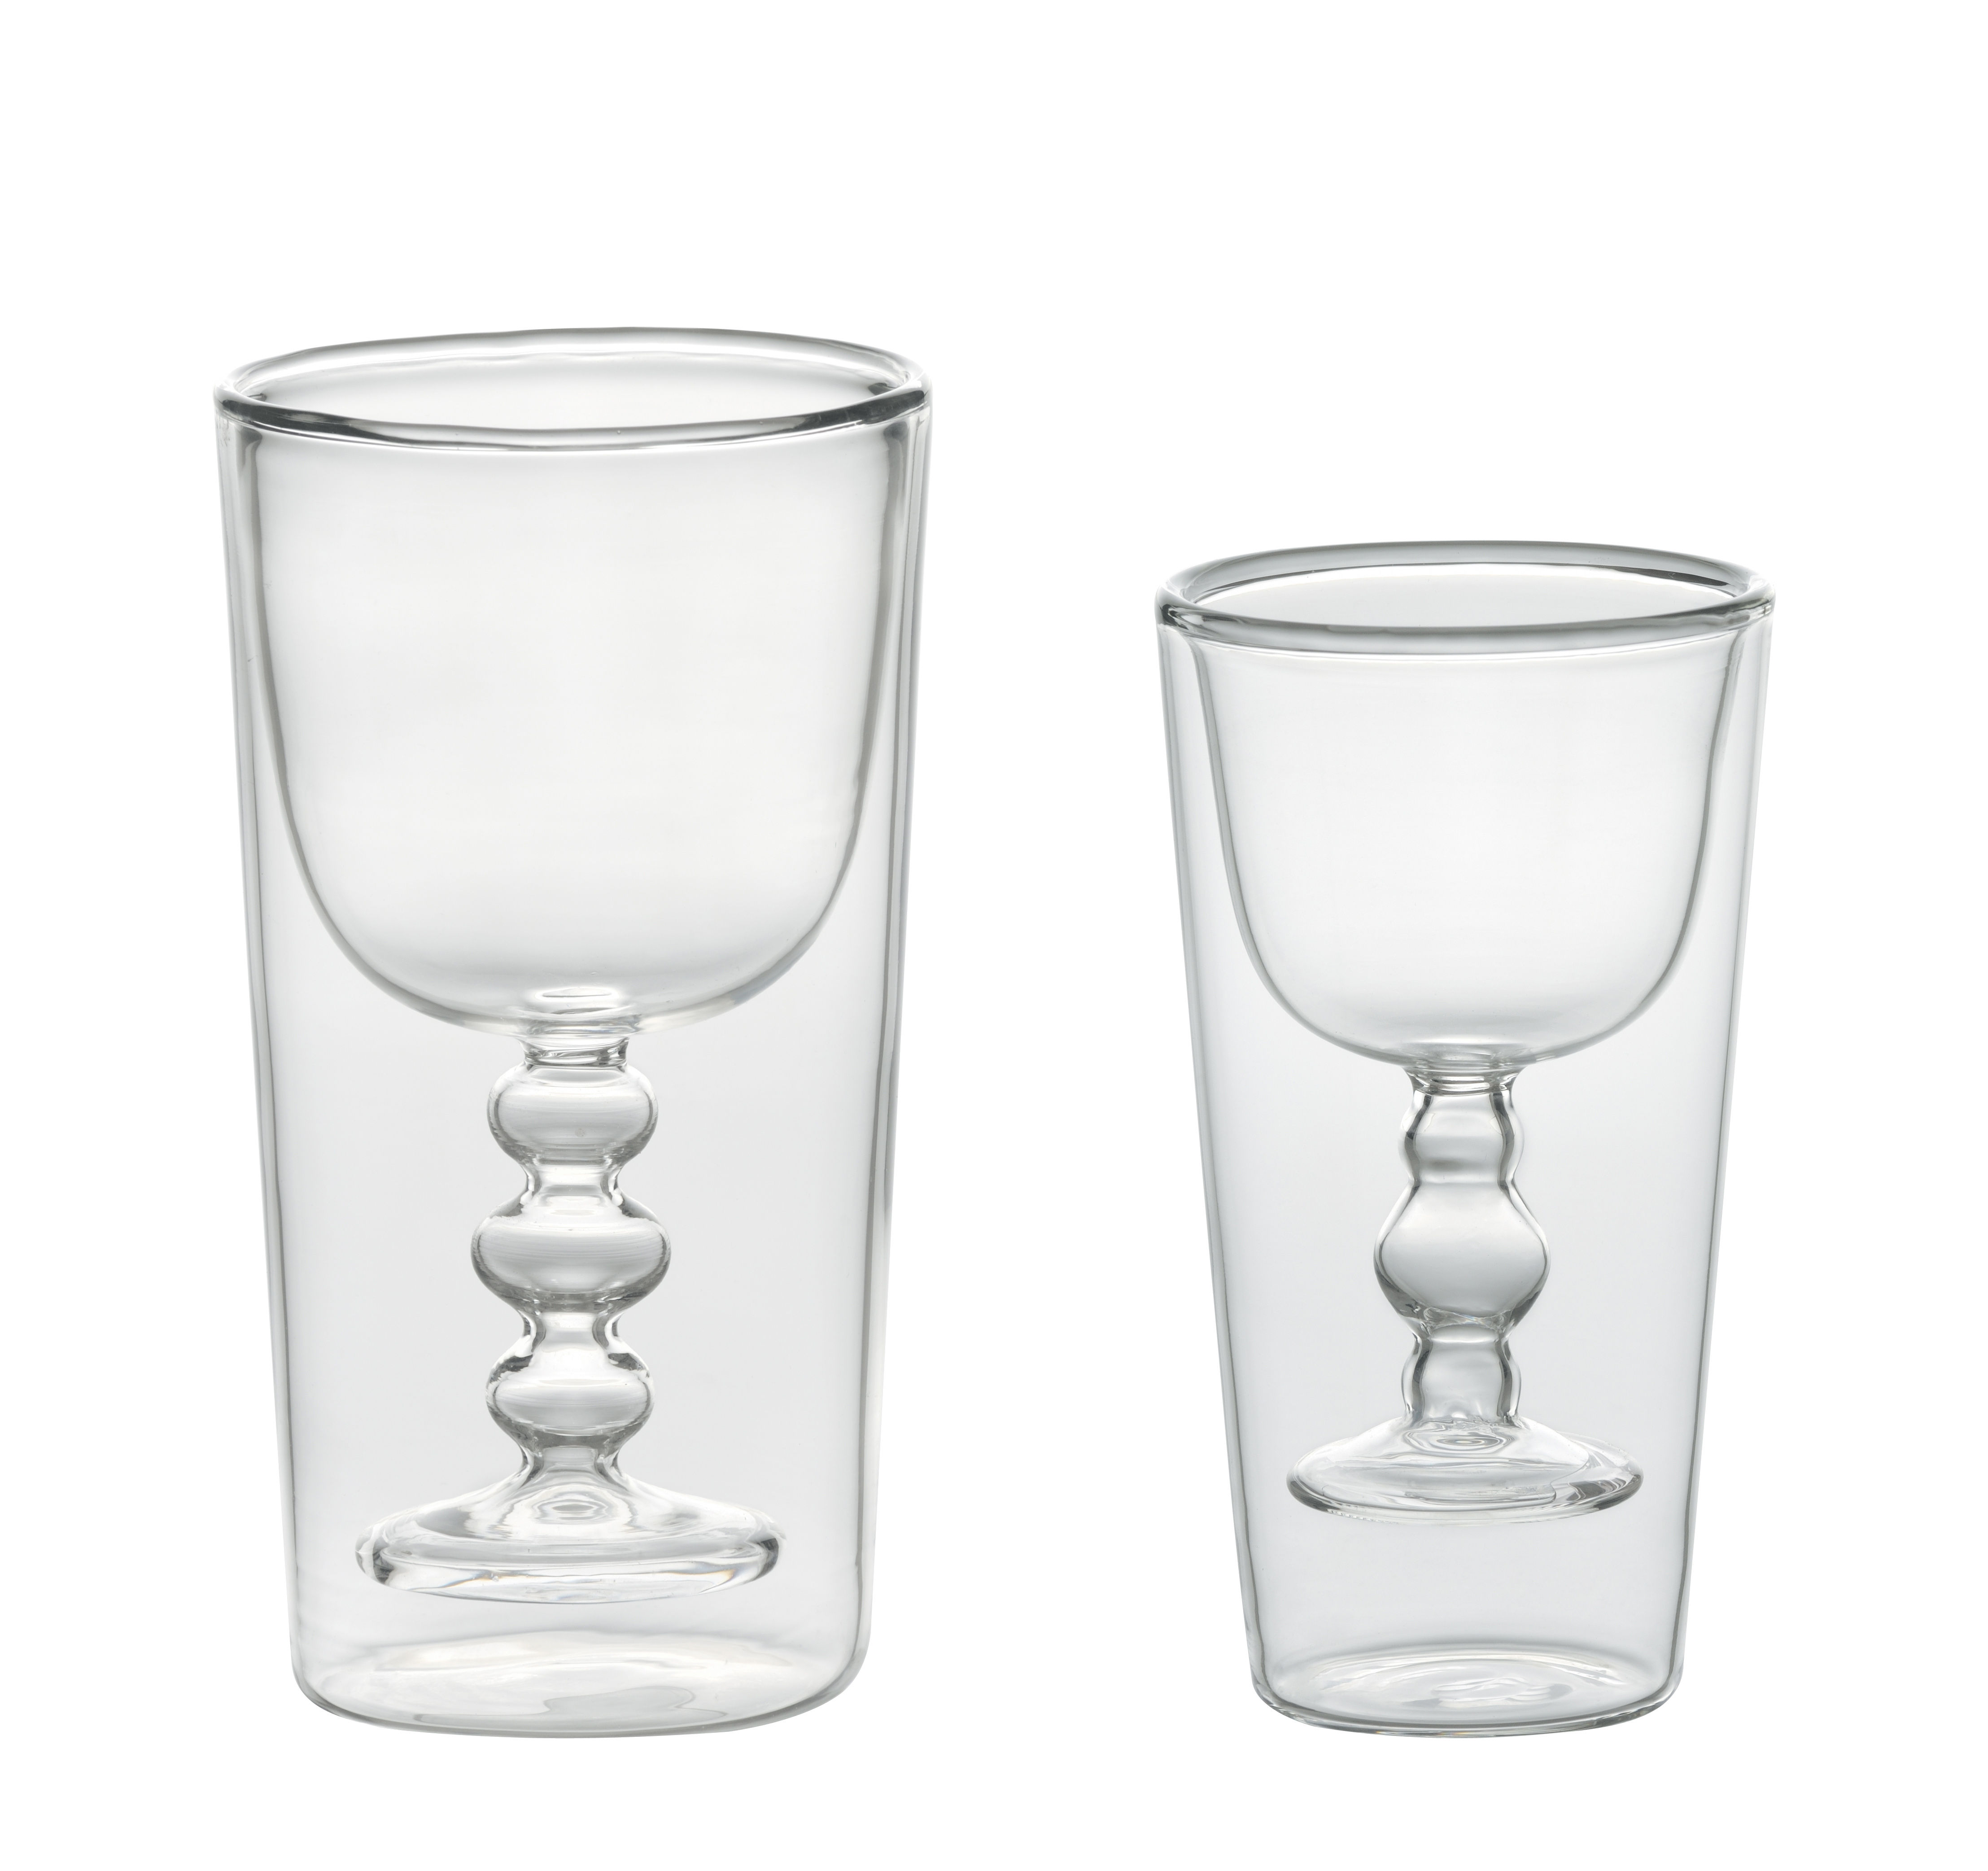 Tableware - Wine Glasses & Glassware - Cocktail Glass - / Set of 2 glasses water + wine by Bitossi Home - Transparent - Blown glass